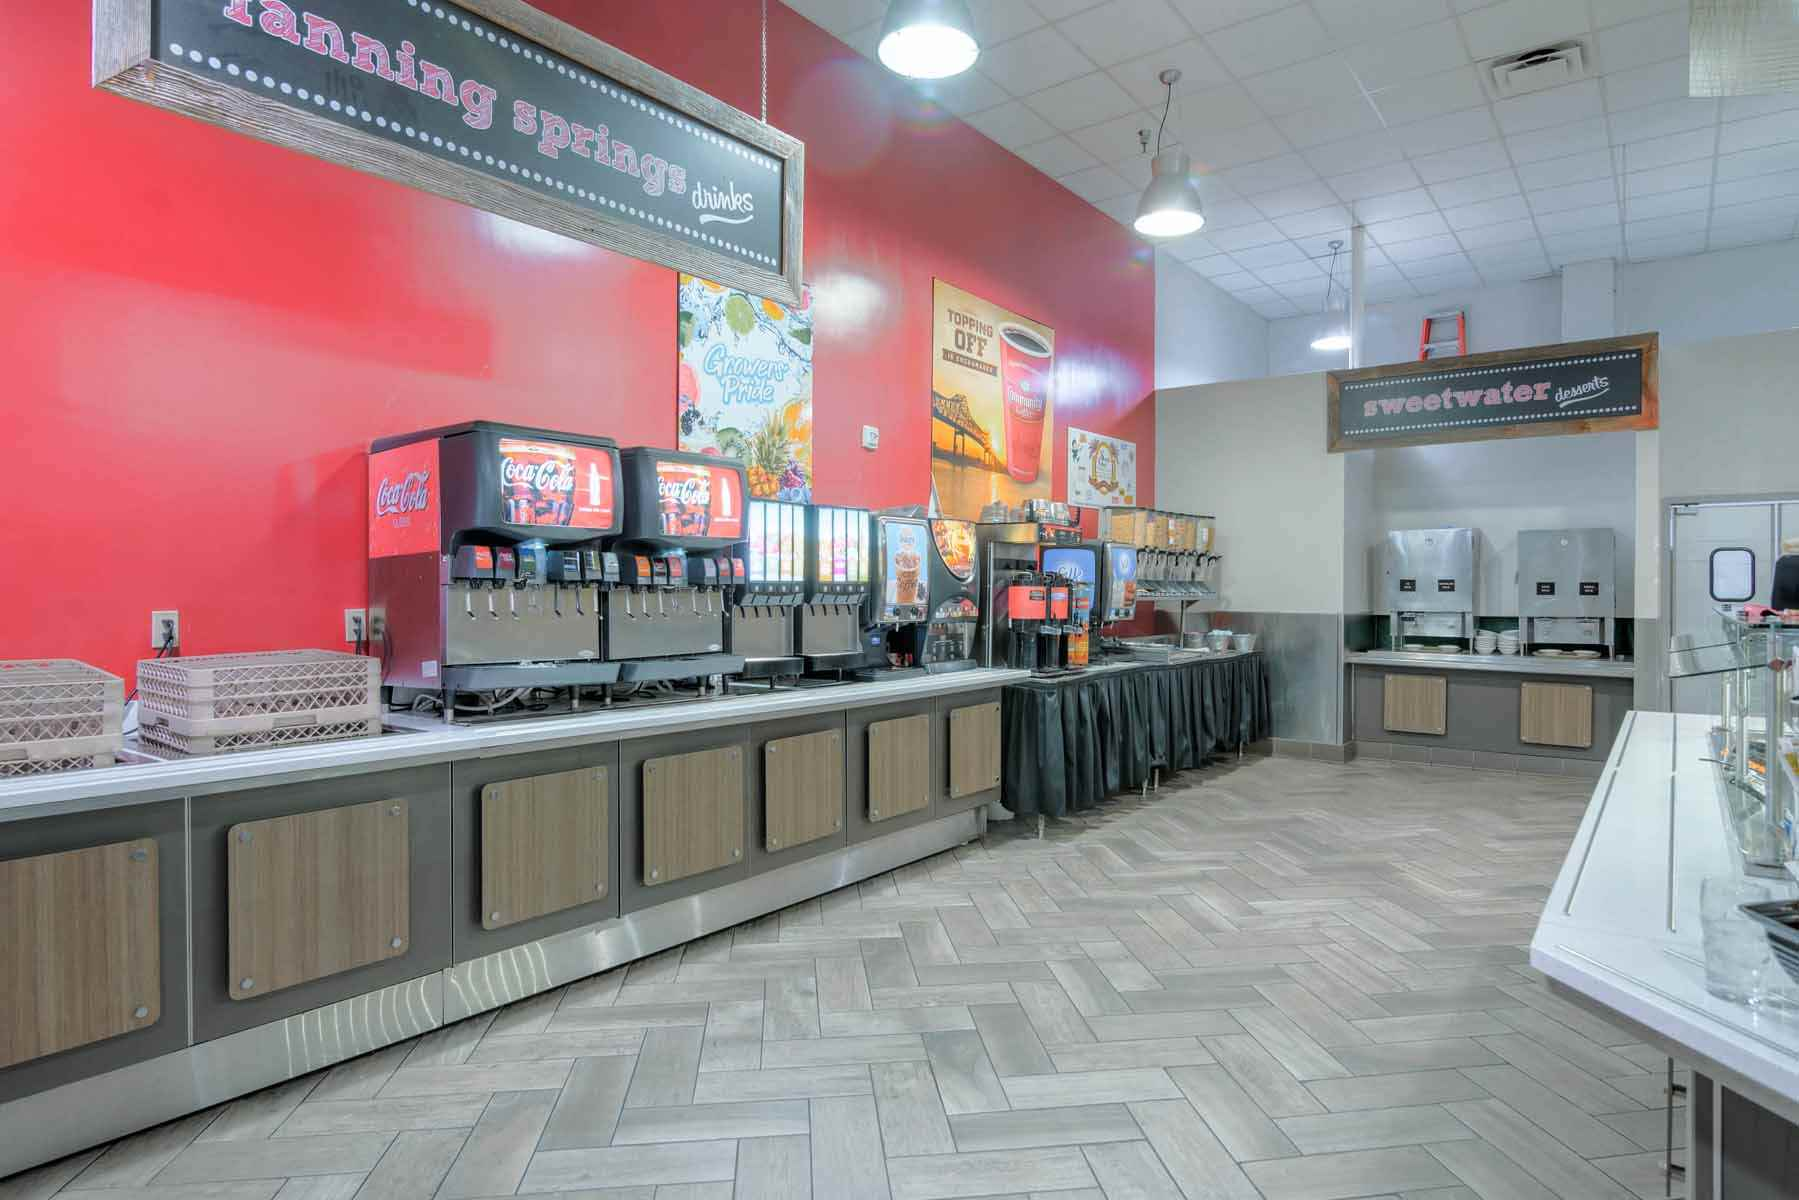 SouthGate-Campus-Centre-Tallahassee-FL-Dining-Area3-Unilodgers